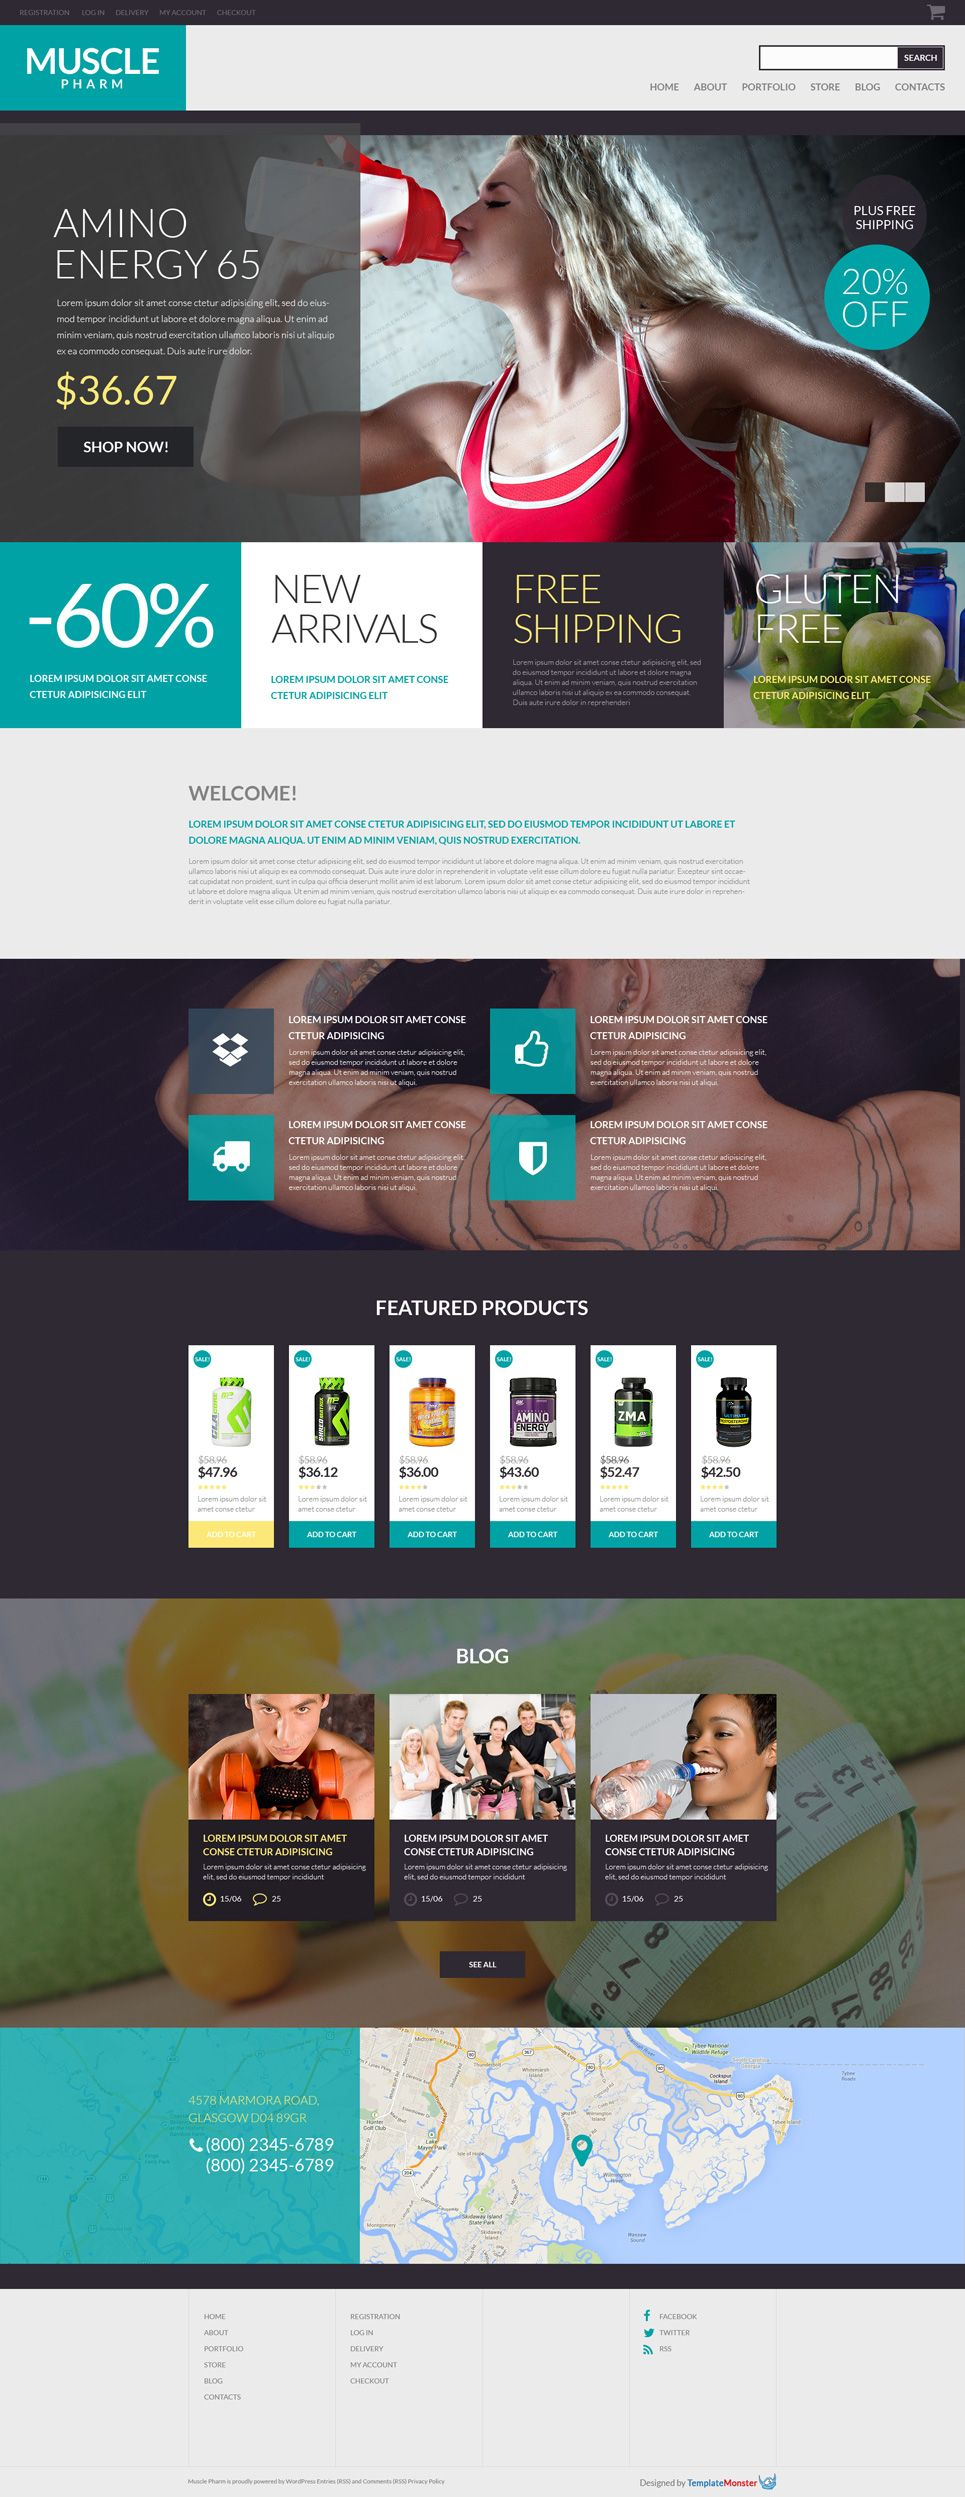 Free woocommerce theme for drug store template website http free woocommerce theme for drug store template website http pronofoot35fo Gallery